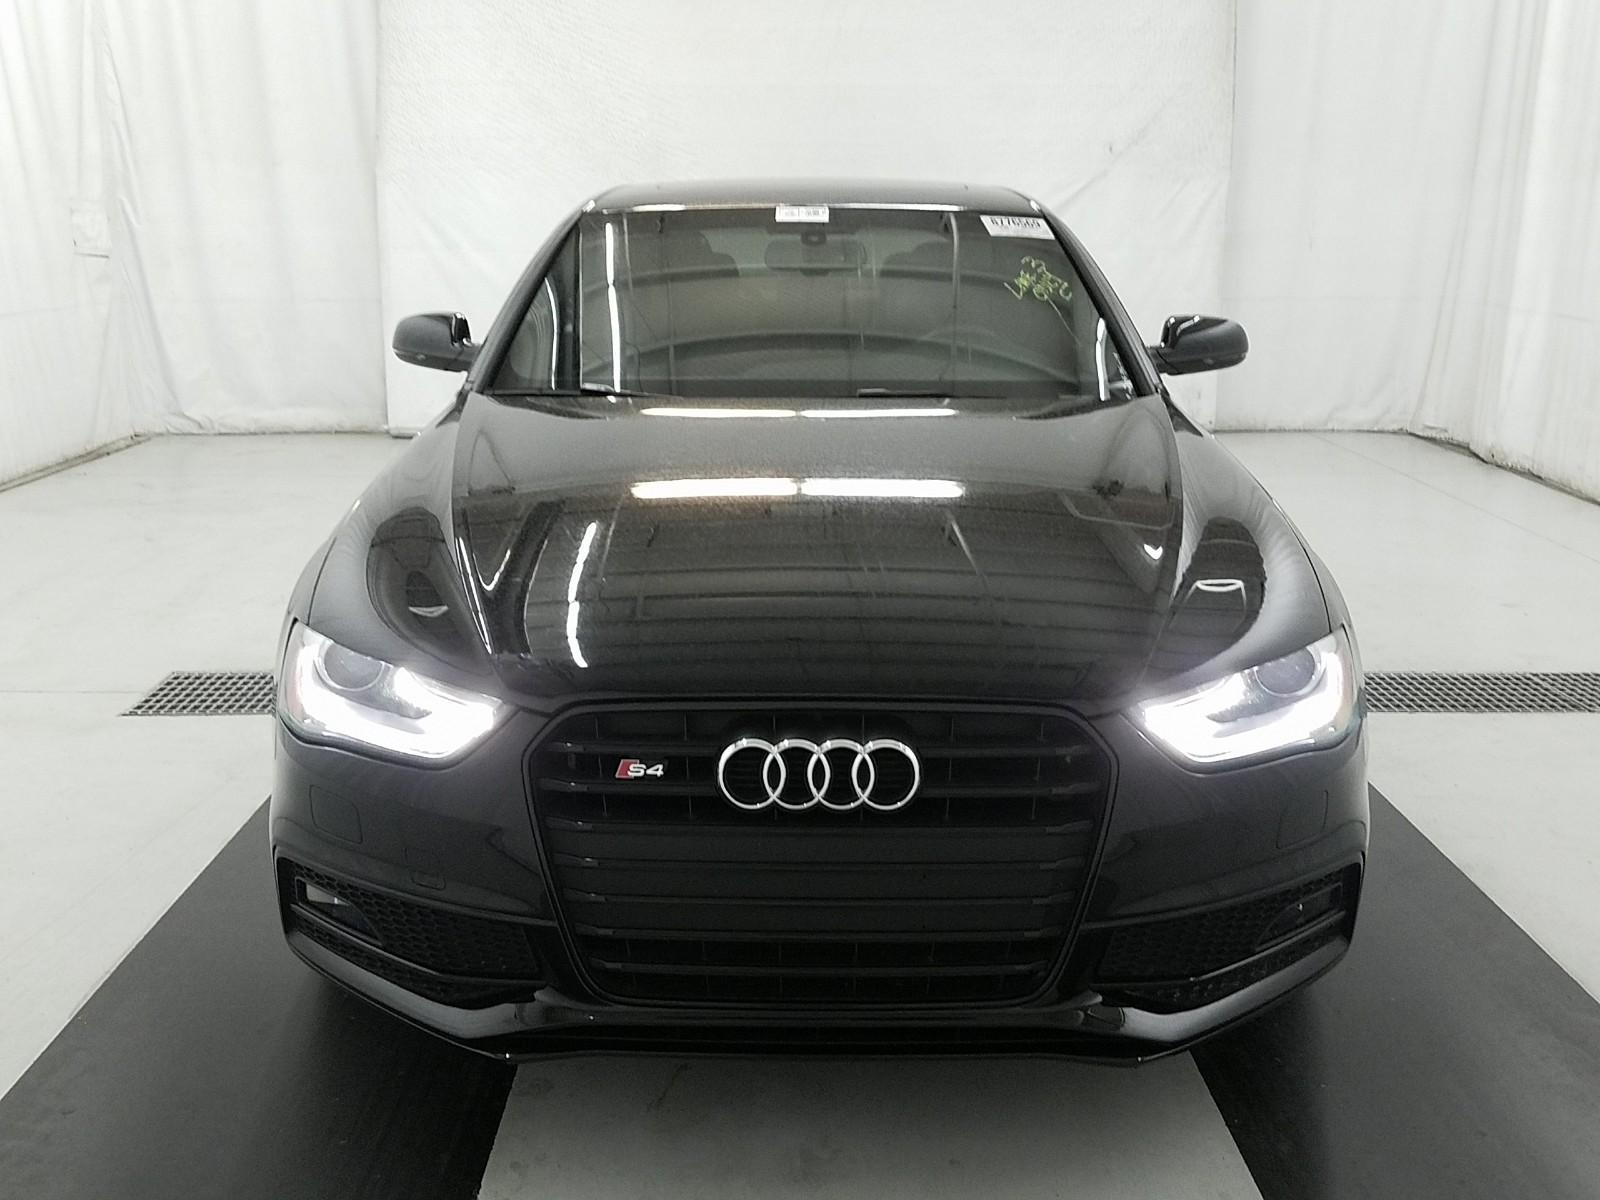 Audi Other 2016 Audi S4 Quattro 1 owner ONLY 20k miles ...